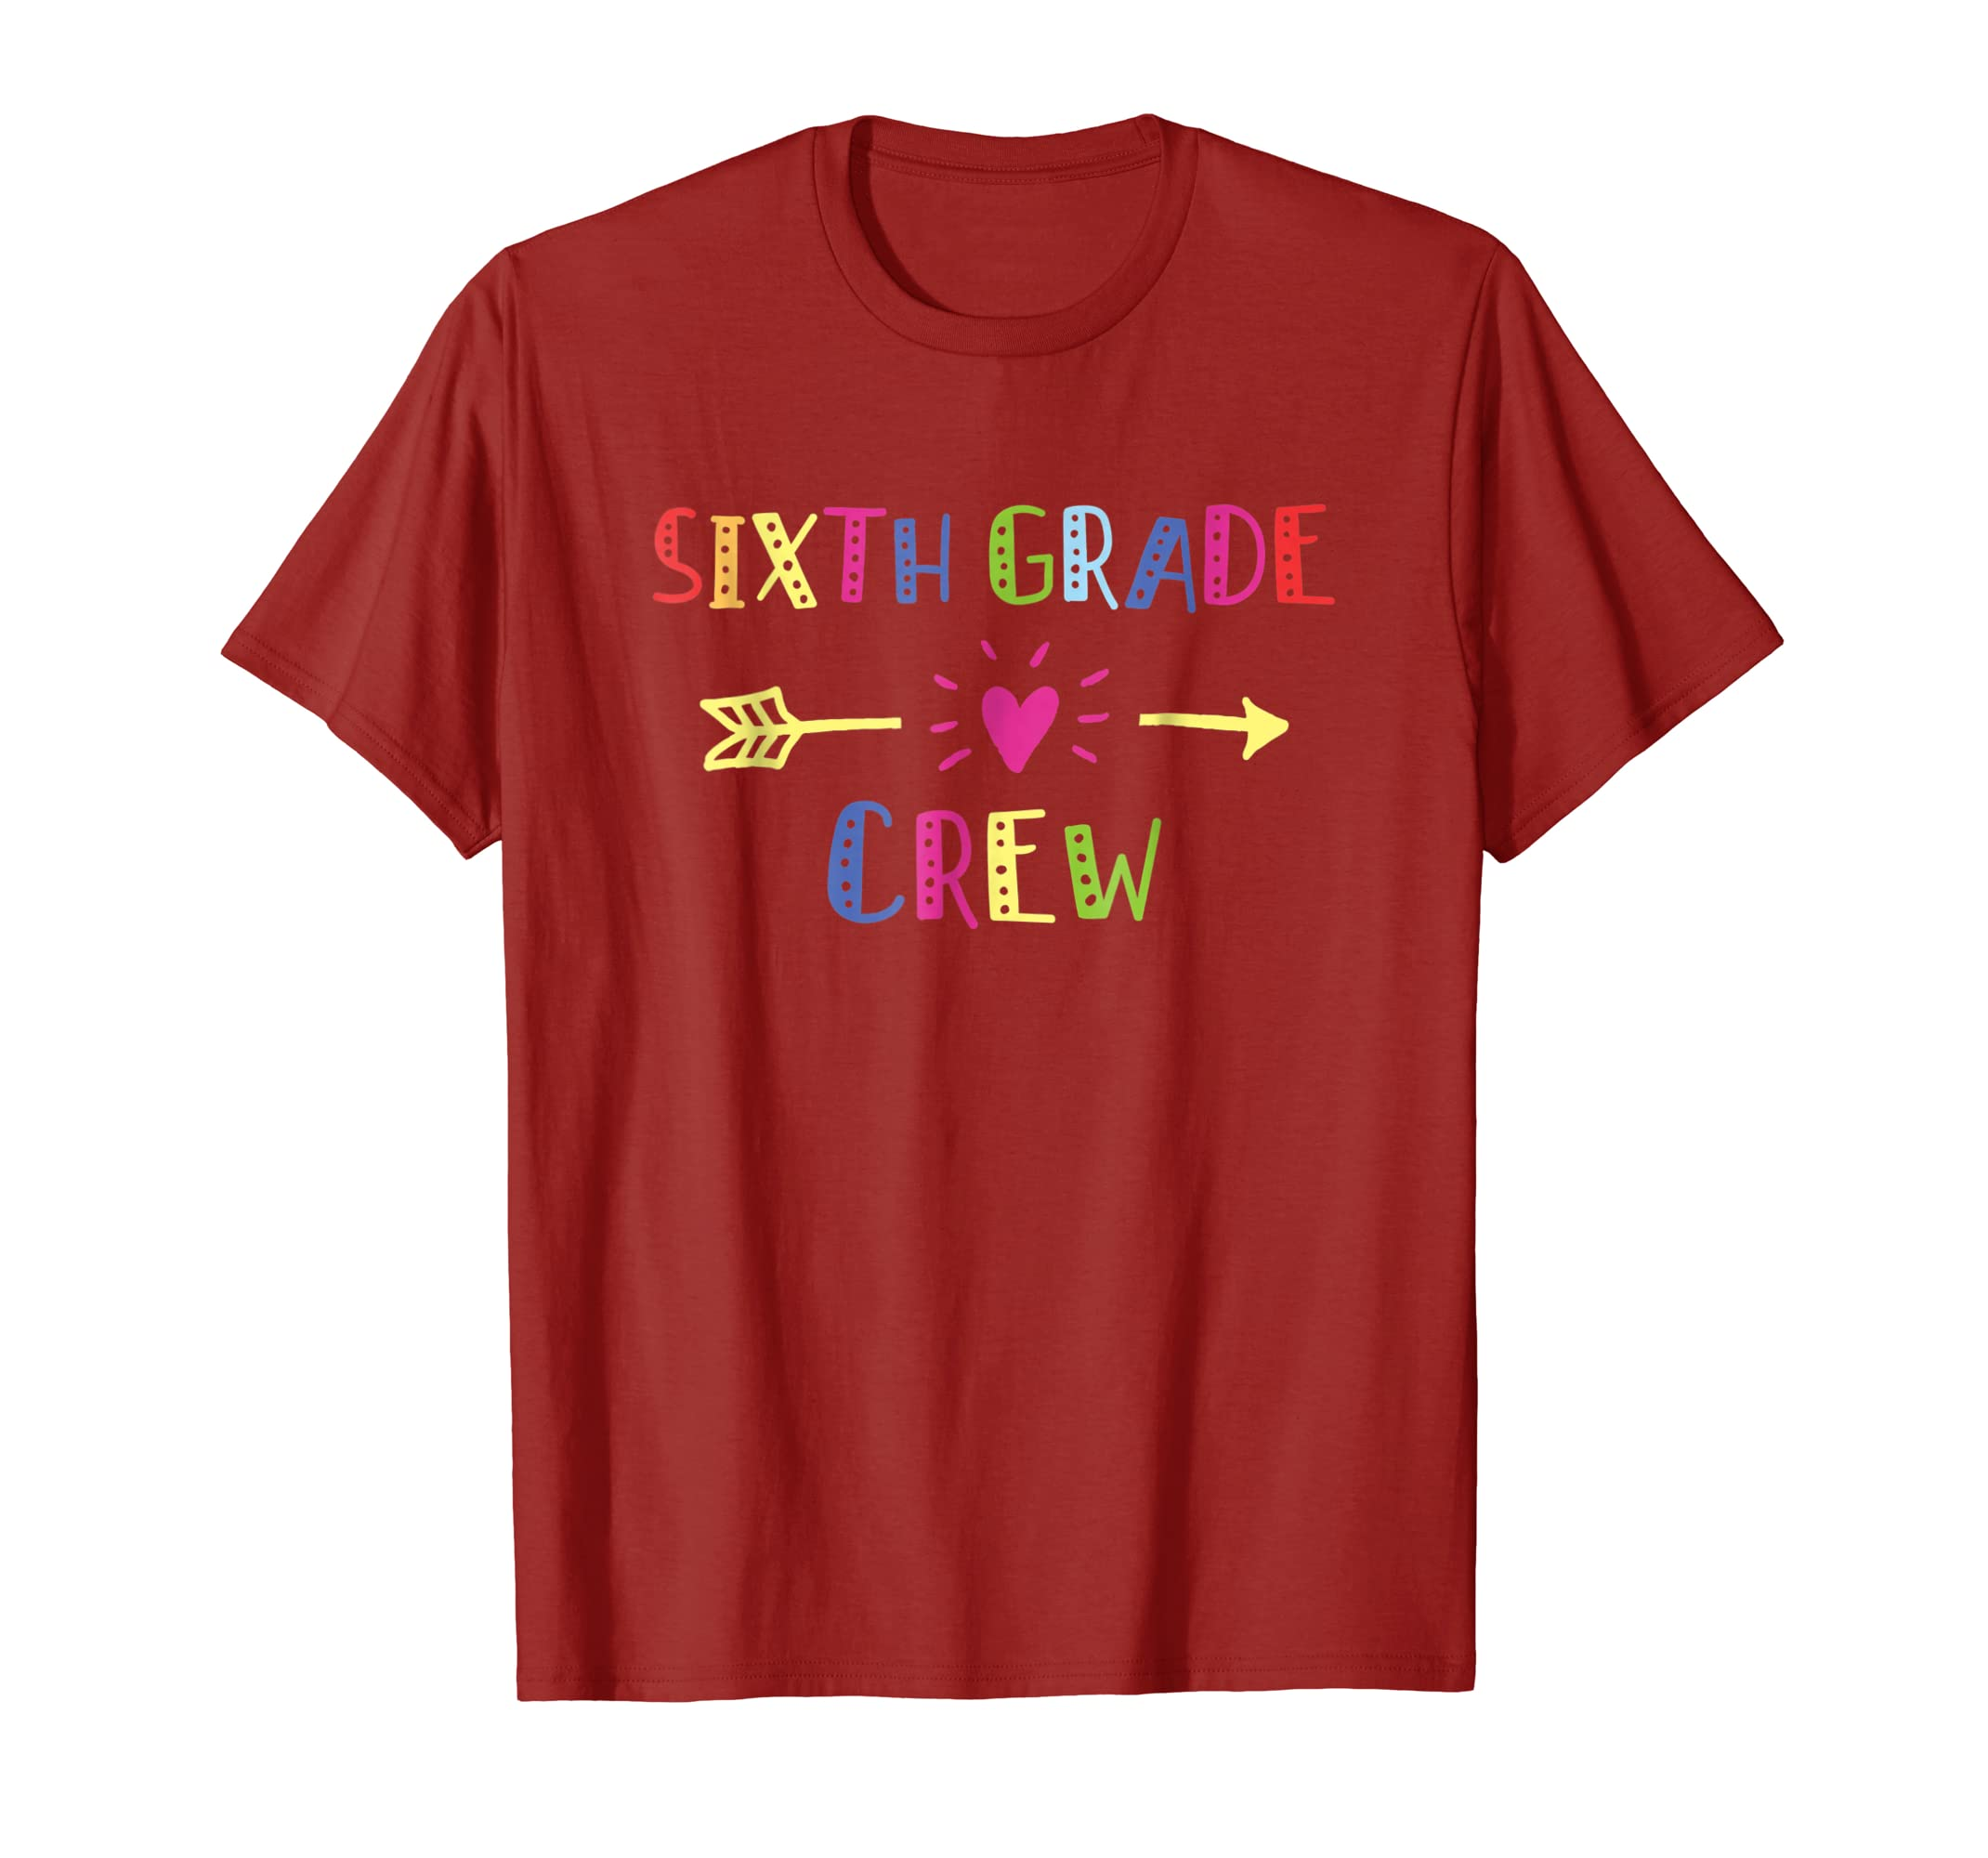 6th Sixth Grade Crew Shirt Happy First Day Of School Kids